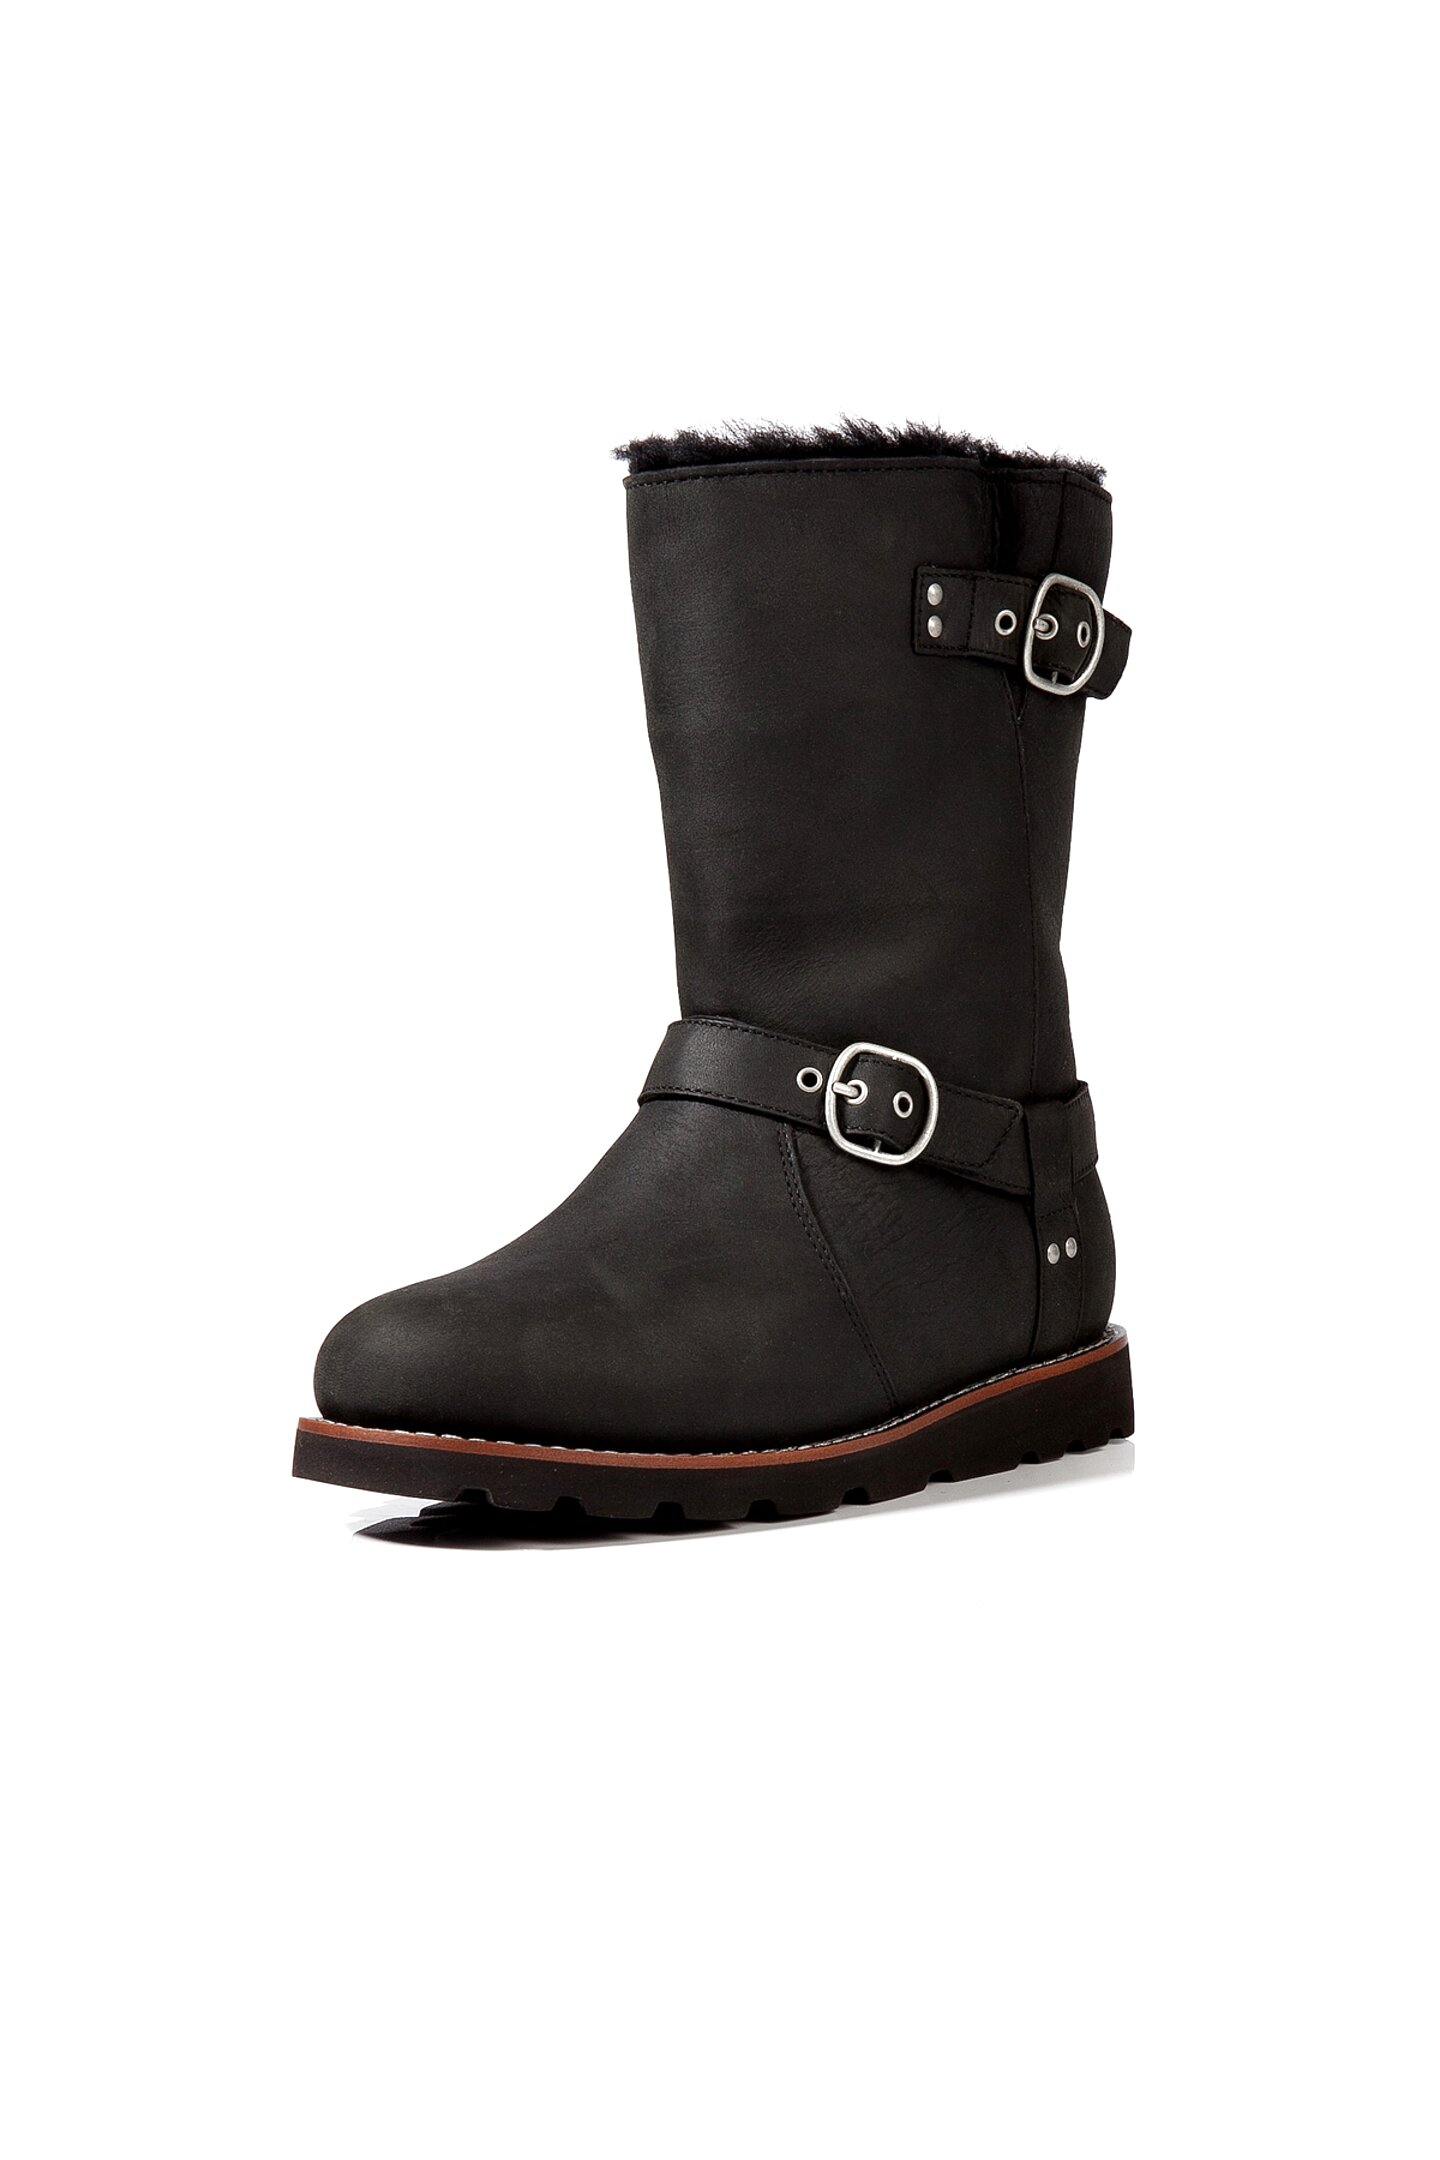 ugg style boots for sale